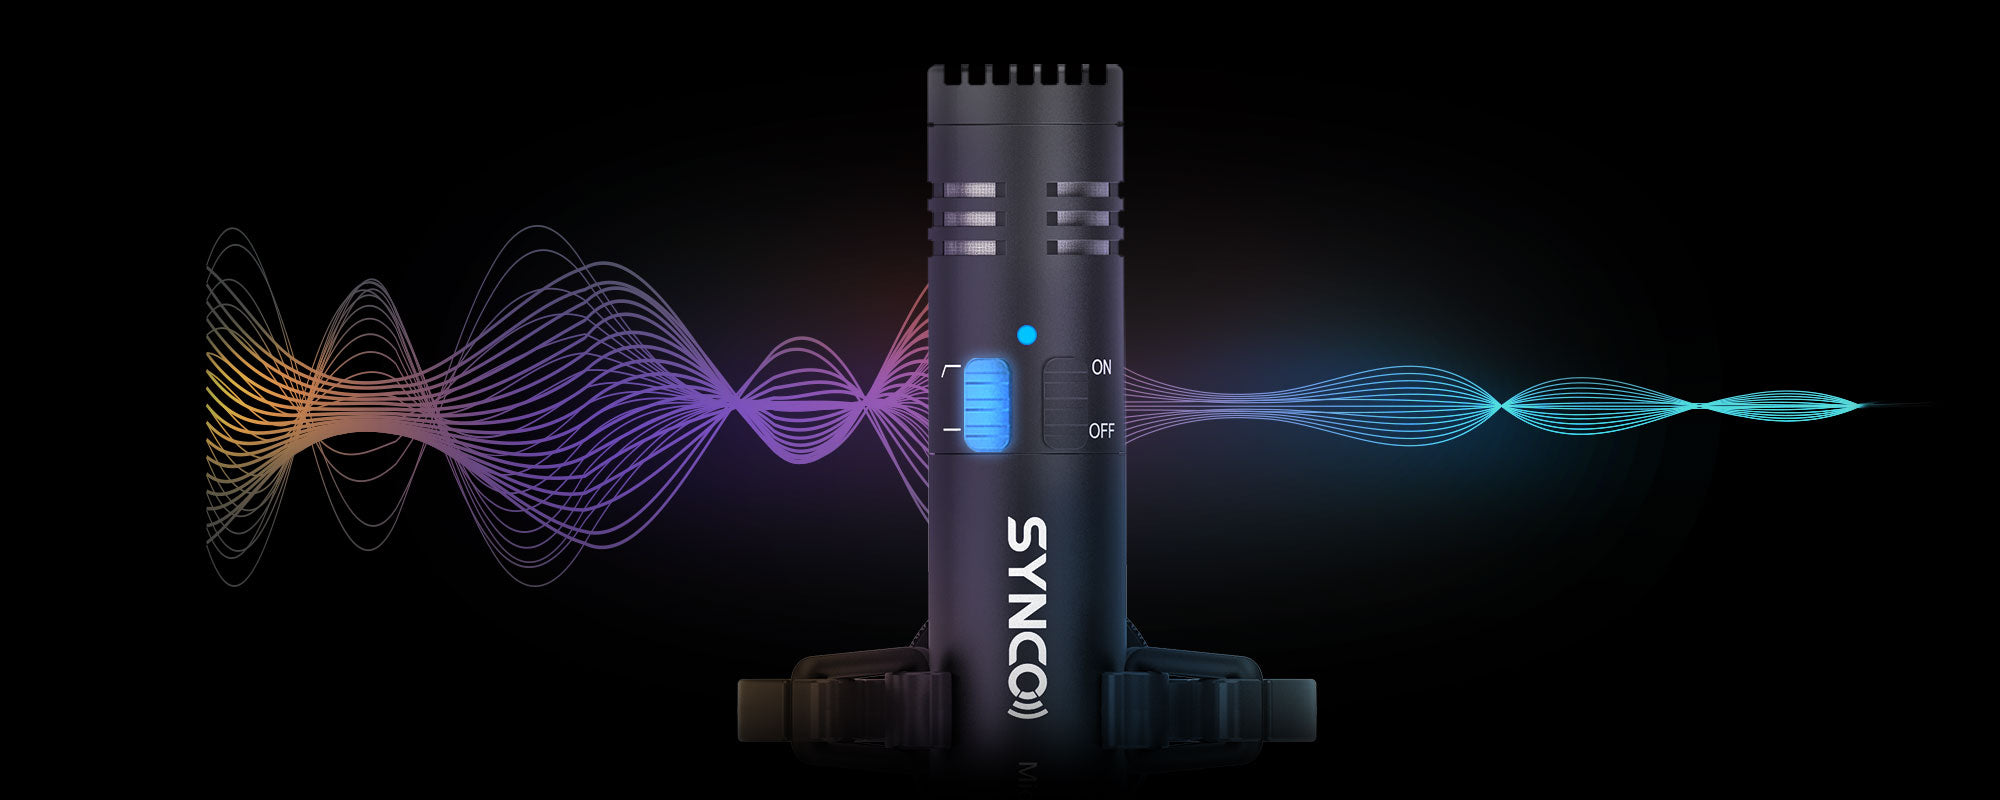 SYNCO Mic-M2S Sound Performance Ensured